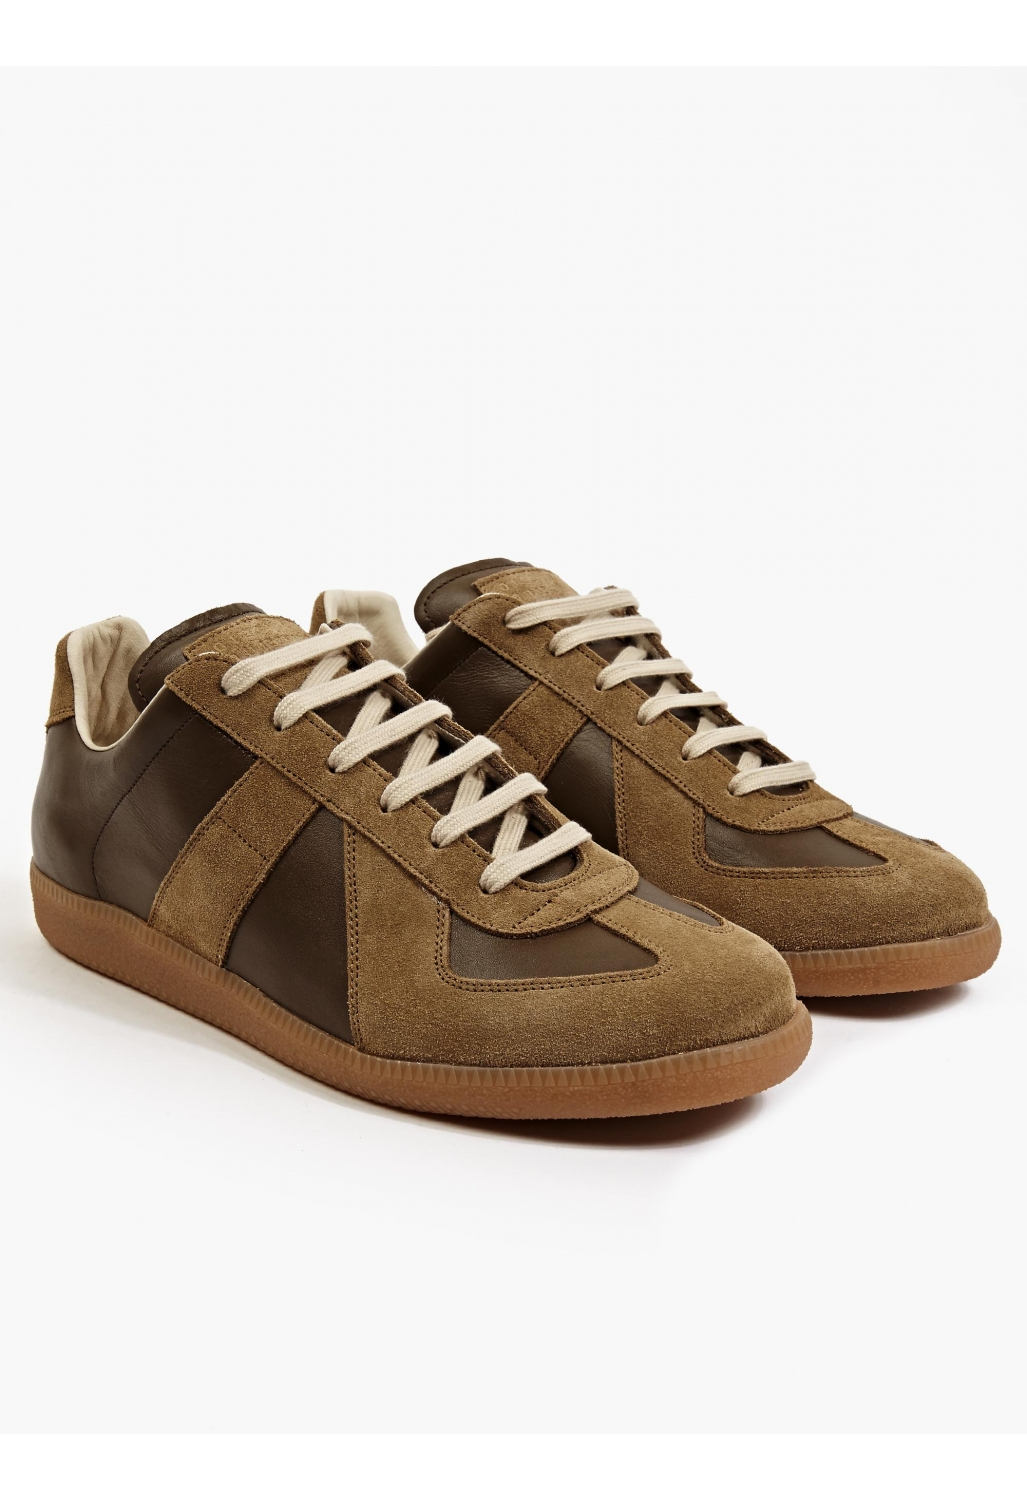 maison margiela leather sneakers brown in brown for men lyst. Black Bedroom Furniture Sets. Home Design Ideas